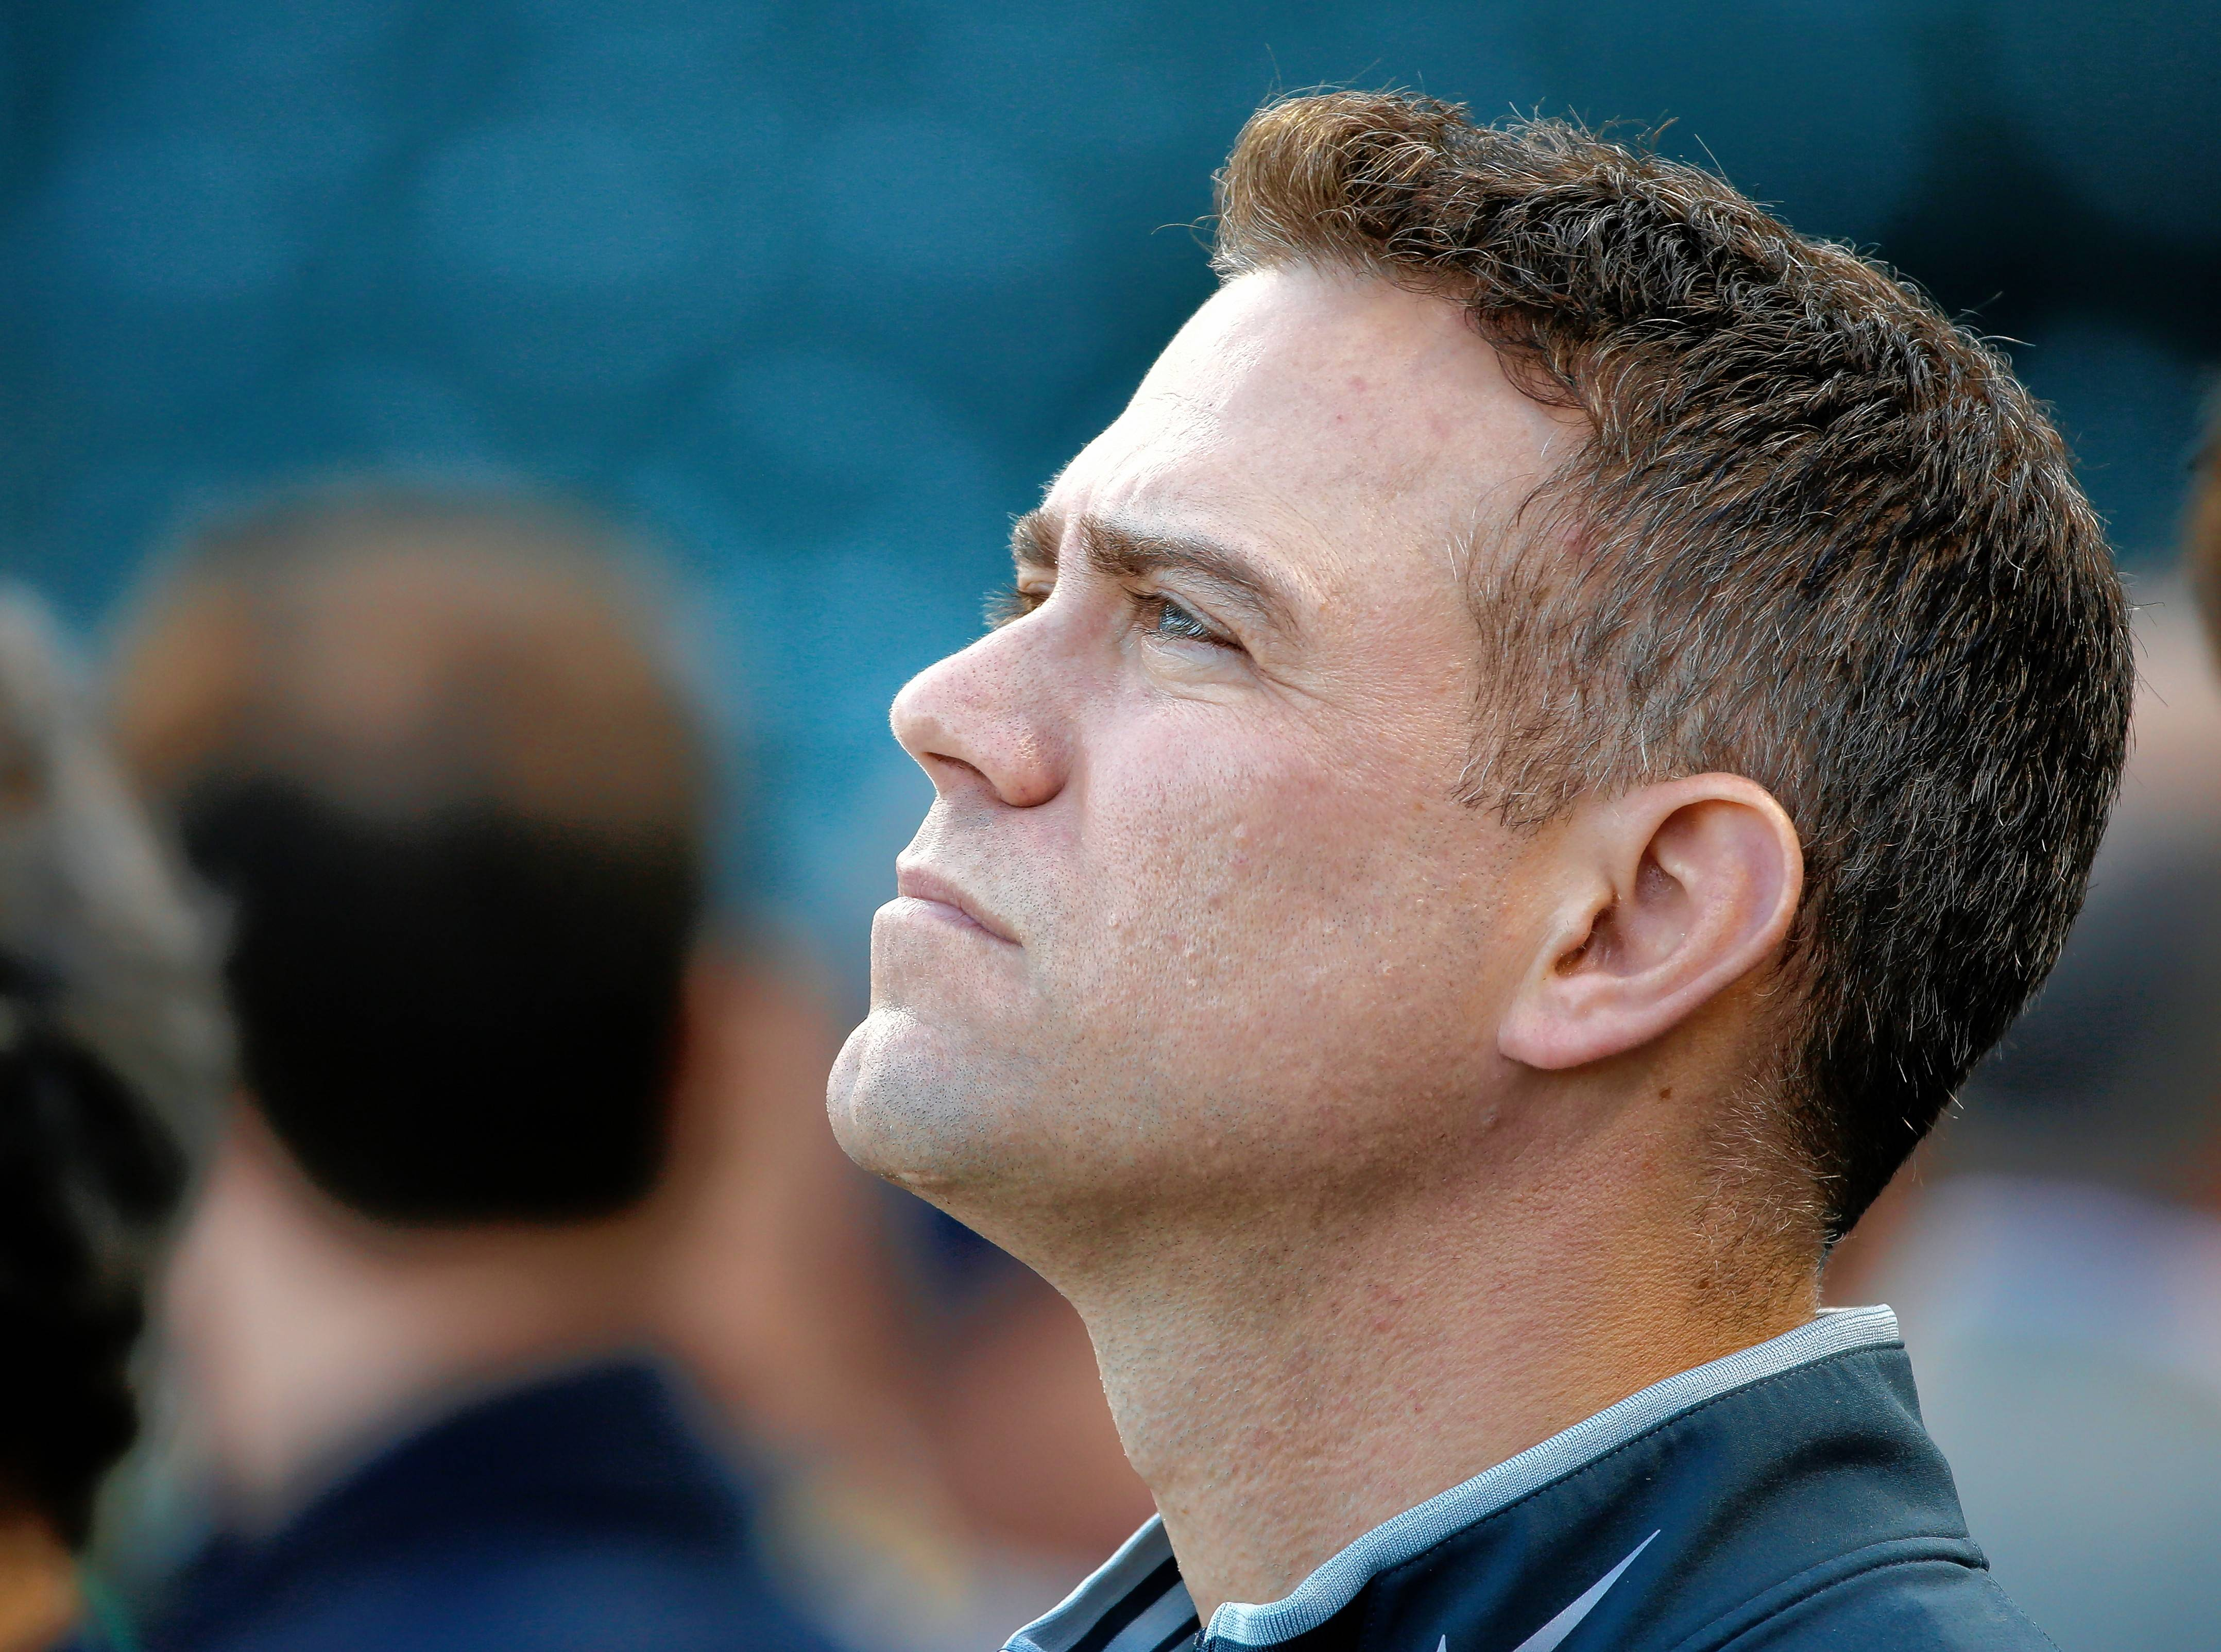 With a strong start to the second half, the Cubs may be giving Theo Epstein a reason to rent for the stretch run.